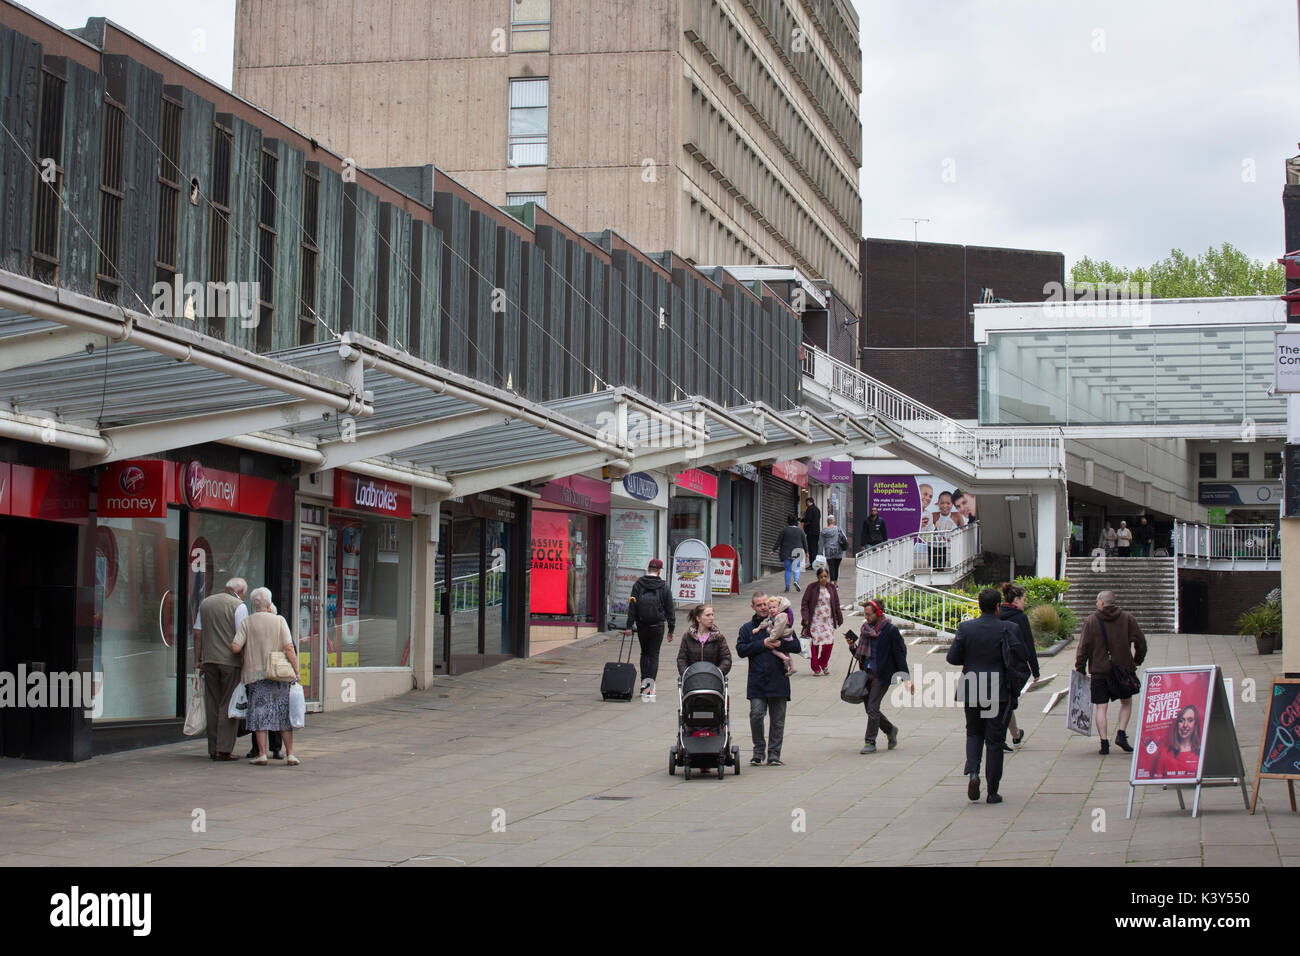 The shopping precinct in Coventry city centre. - Stock Image